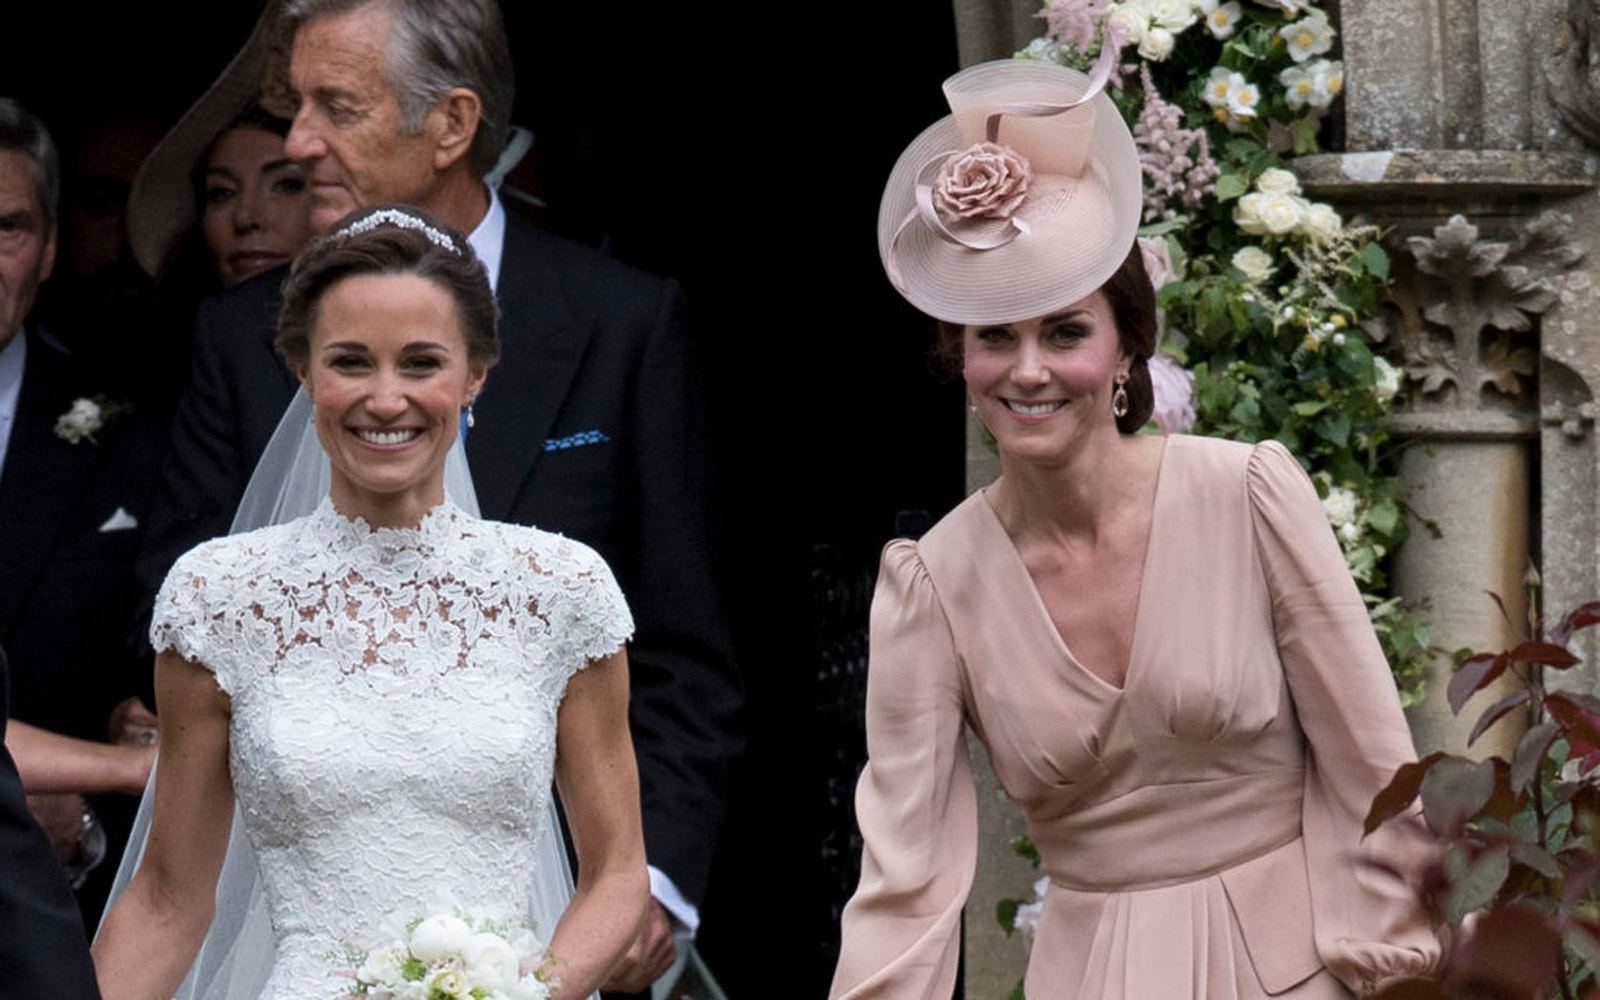 ENGLEFIELD GREEN, ENGLAND - MAY 20:  Pippa Middleton and Catherine, Duchess of Cambridge attend the wedding of Pippa Middleton and James Matthews at St Mark's Church on May 20, 2017 in Englefield Green, England.  (Photo by UK Press Pool/UK Press via Getty